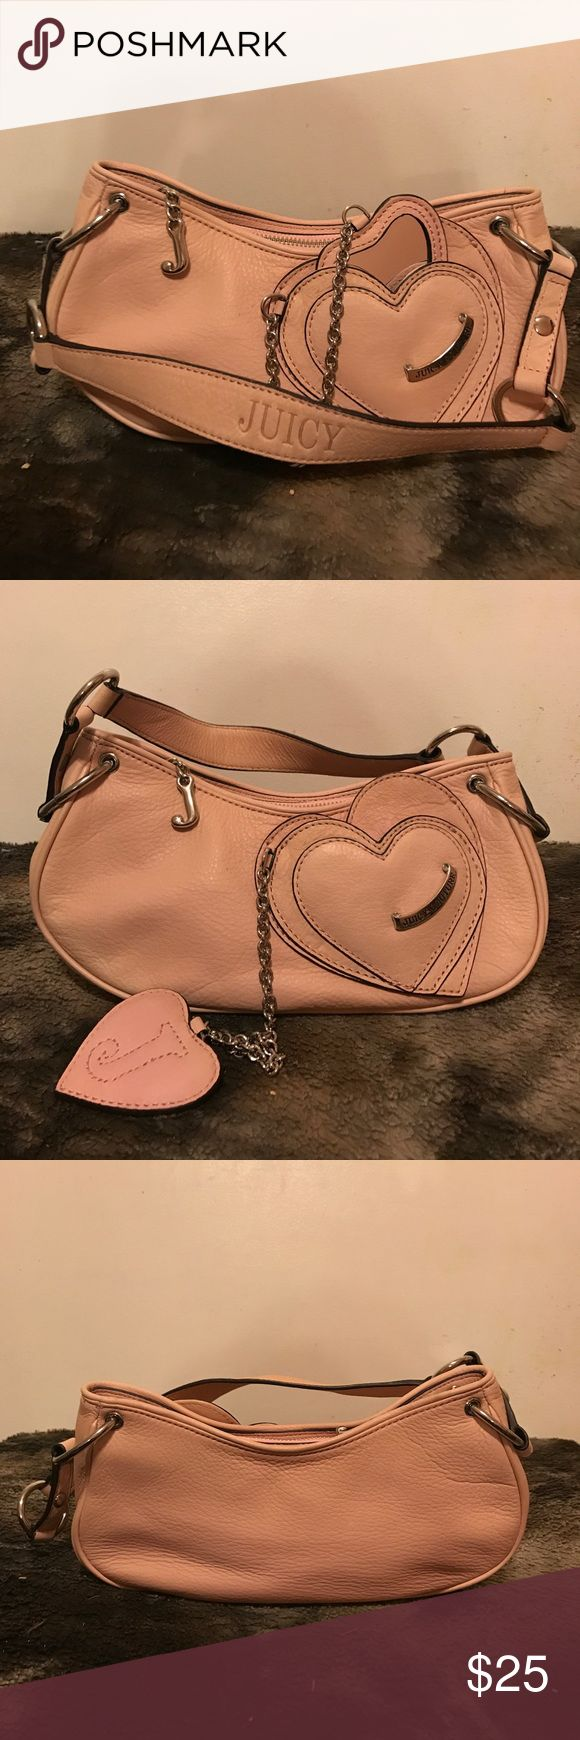 "Authentic Juicy Couture Leather Purse With Mirror! Authentic Juicy Couture Light Pink Leather Mini Shoulder Purse With Mirror! Used but in great shape. Please enlarge photos for details! RN 52002/CA16396. Silver hardware, zipper enclosure, 1 zipper pocket on the inside! 10"" wide, 5"" deep, and 10"" strap! Juicy Couture Bags"